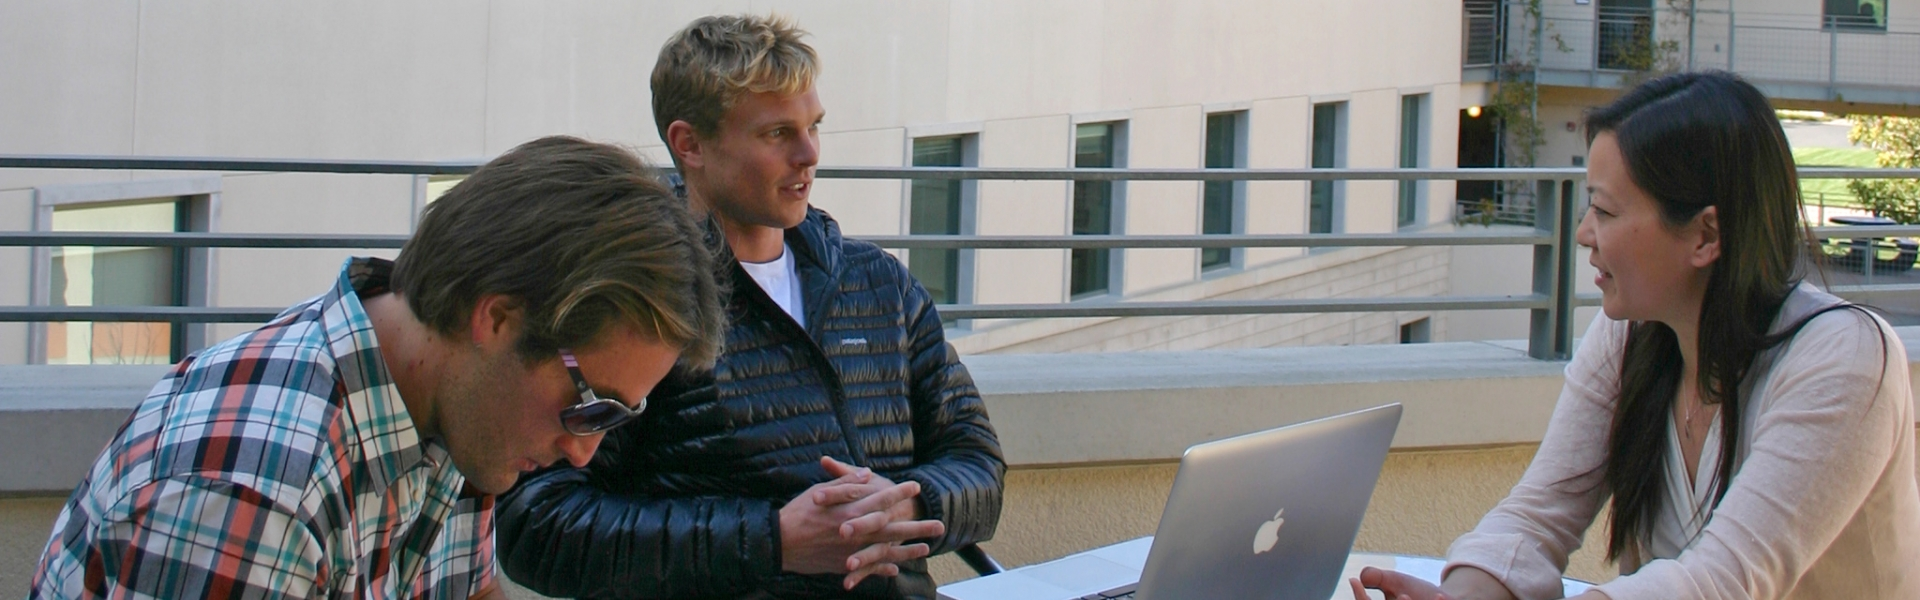 Two students with laptops having discussion with advisor